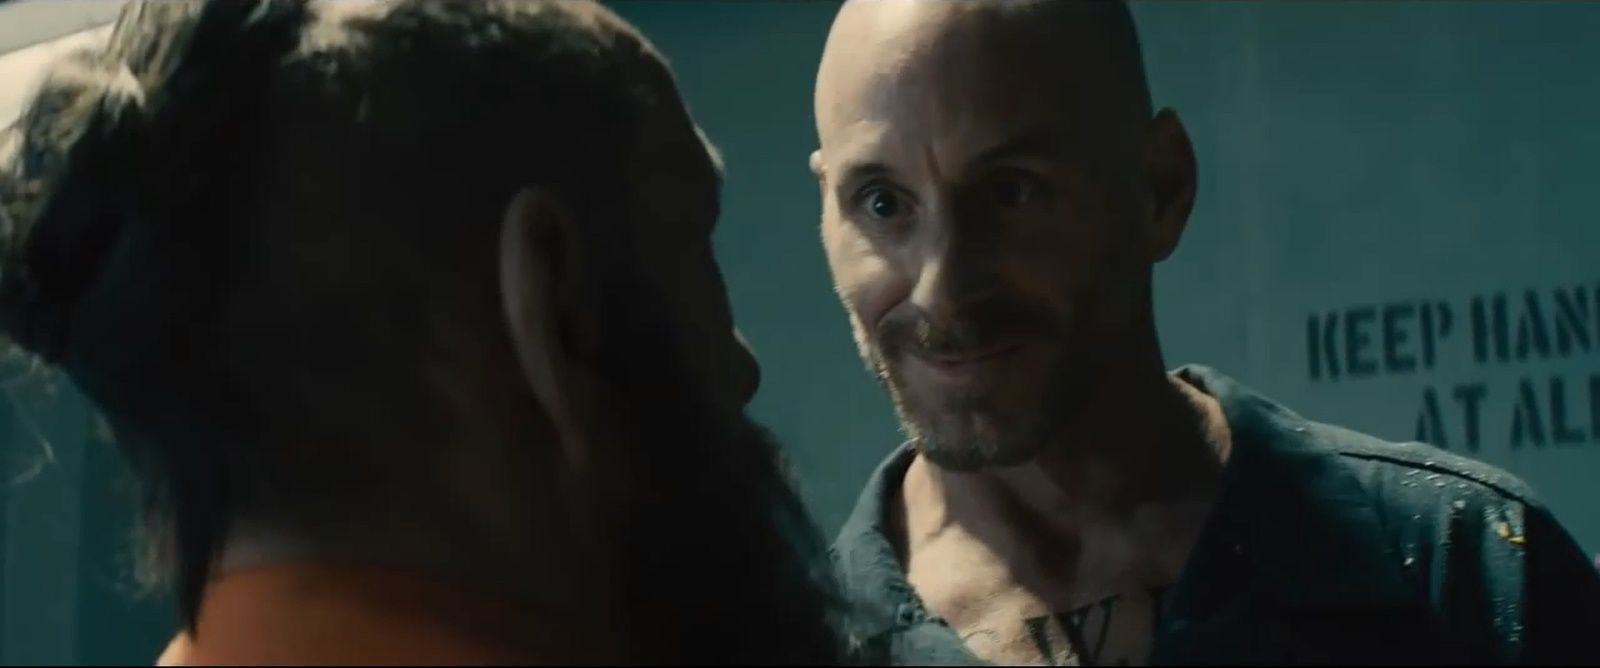 Matt Gerald alias White power dave